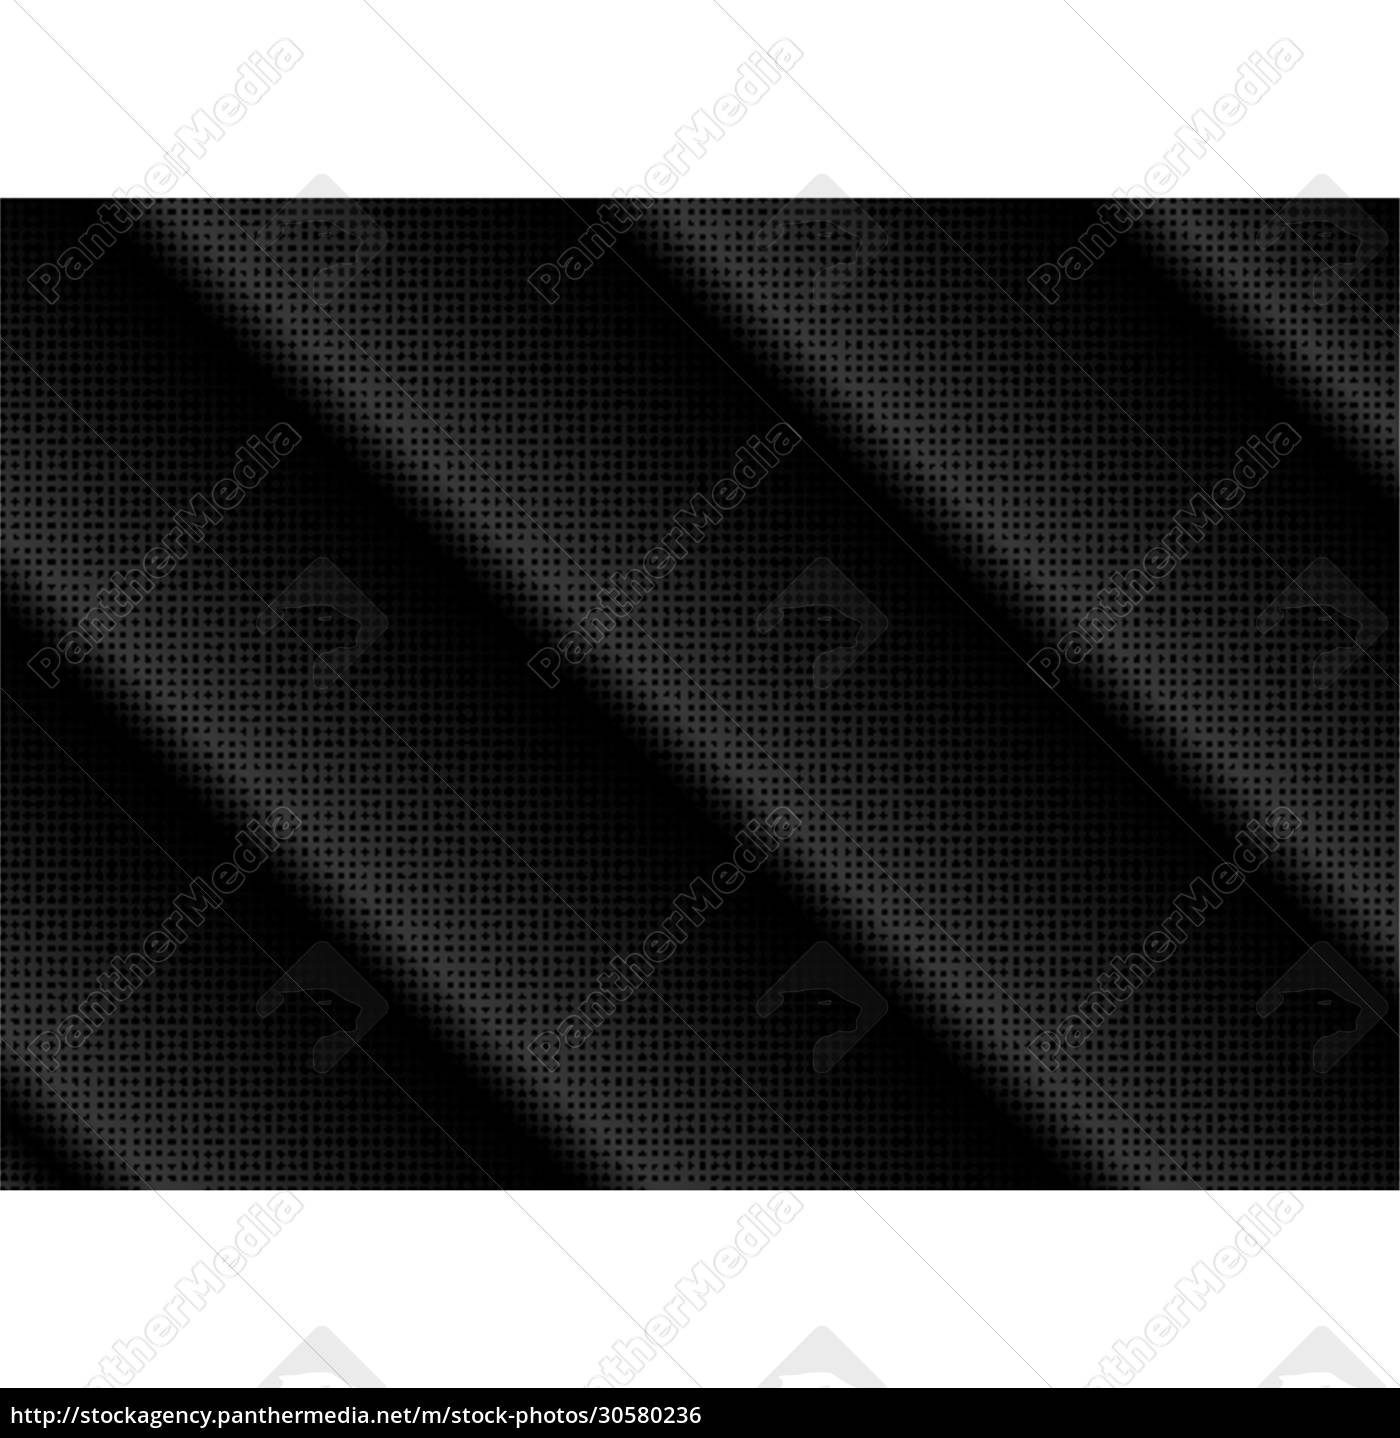 abstract, halftone, dots, design, in, black - 30580236